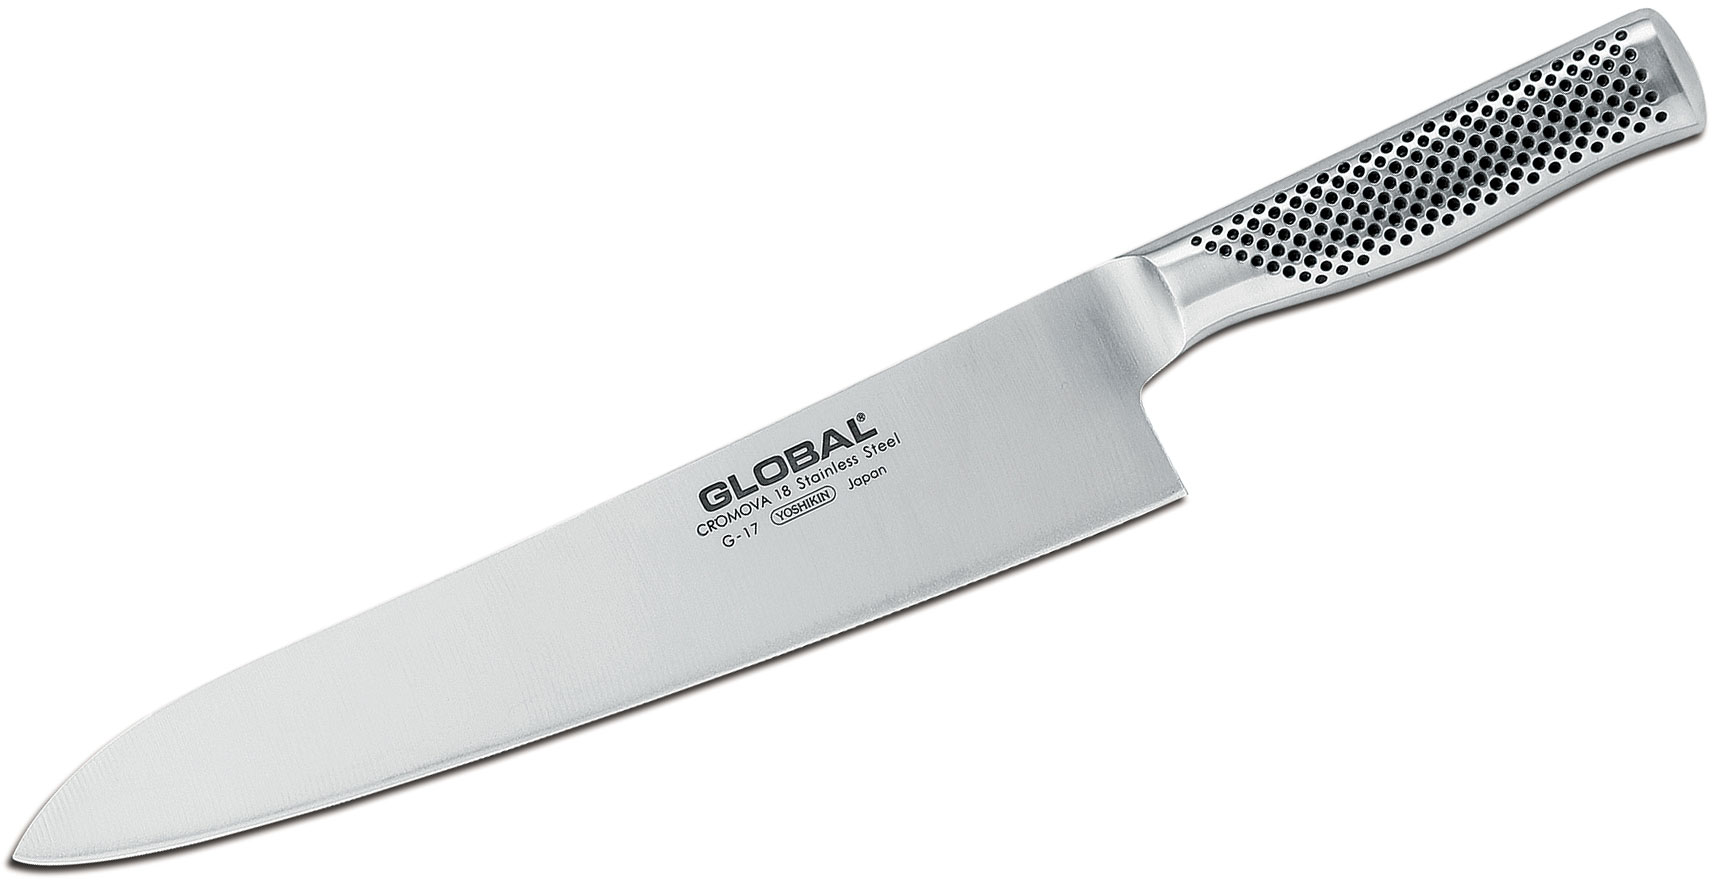 Global G-17 Classic 11 inch Chef's Knife